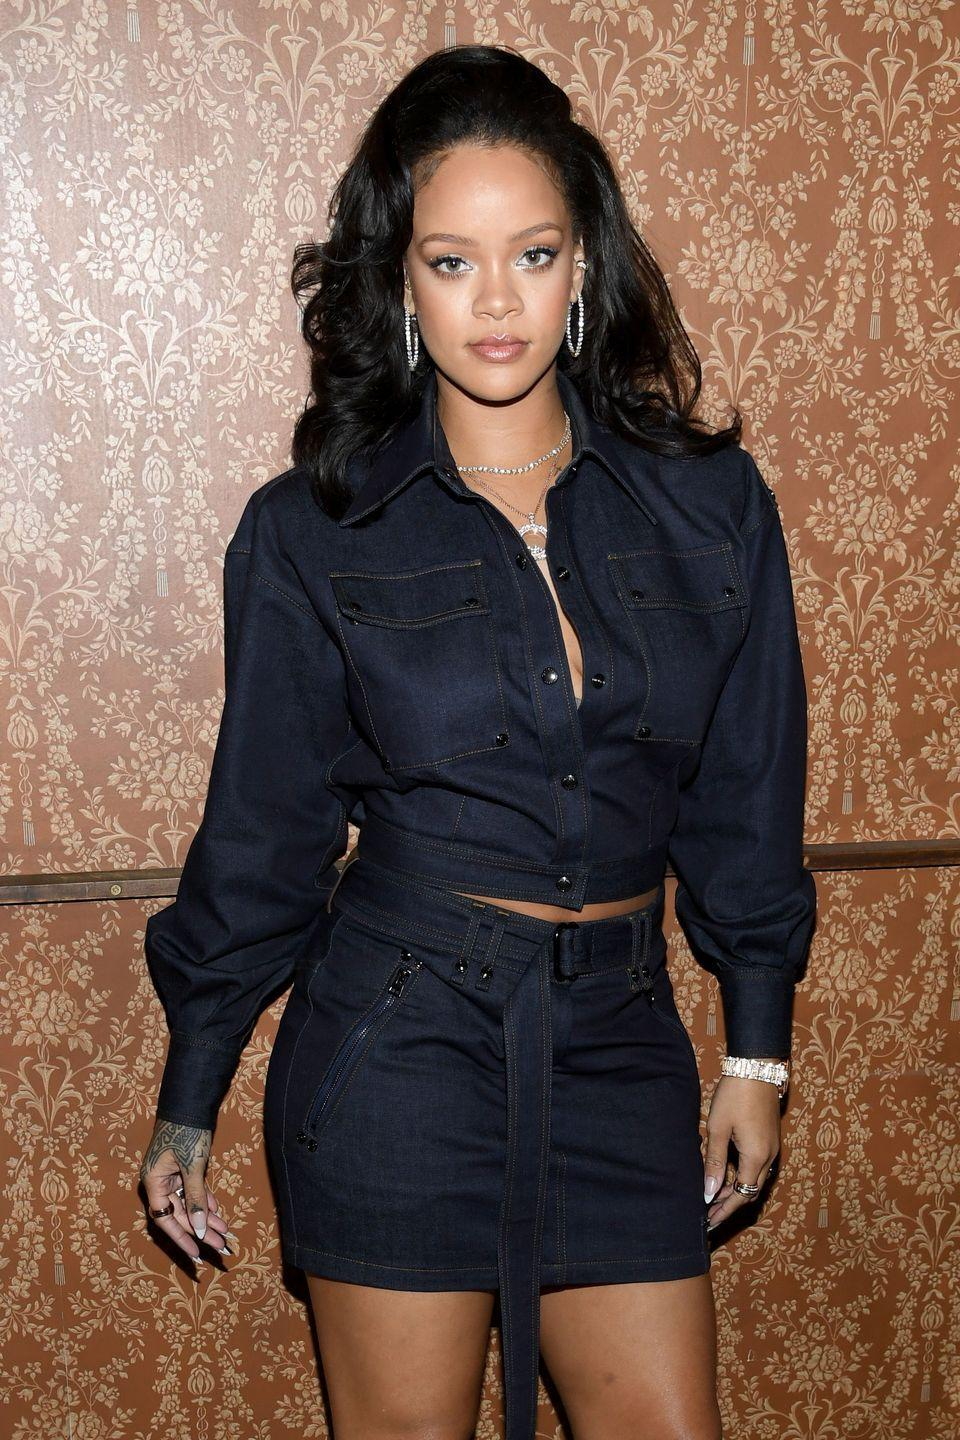 "<p>On a classic fall day in October 2016, Rihanna took down all of her exes – Drake, Chris Brown, Matt Kemp, and even Leonardo DiCaprio (rumored) – with a single <a href=""https://www.instagram.com/p/BLU0-MyAeOE/"" rel=""nofollow noopener"" target=""_blank"" data-ylk=""slk:Instagram"" class=""link rapid-noclick-resp"">Instagram</a>, and she didn't even have to show her face. A text-only gram that says, ""None of my exs (sic) are married or in happy relationships so it's safe to say that I wasn't da problem lol,"" has received close to 1 million likes. Is Rihanna the best or what?</p>"